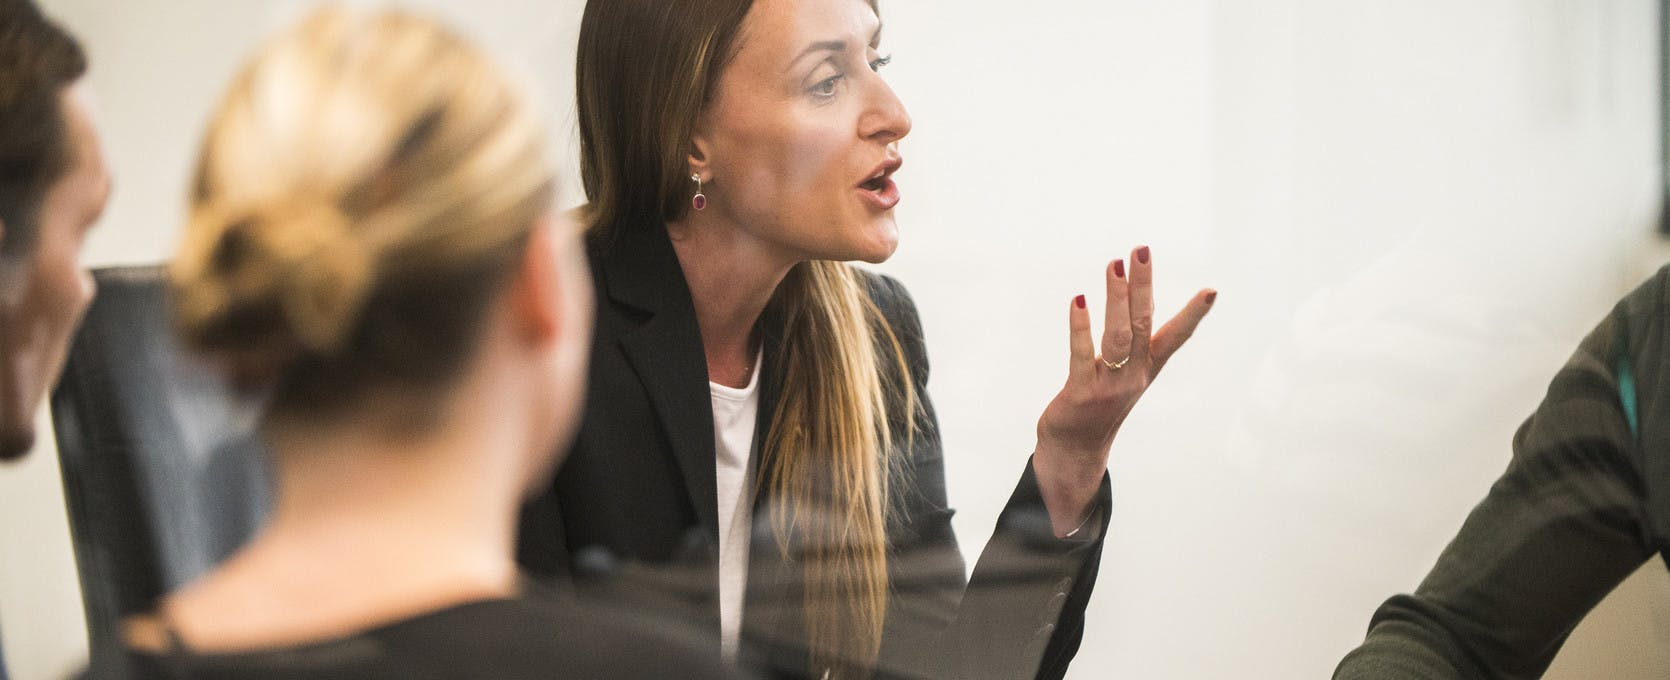 Woman speaking at a meeting